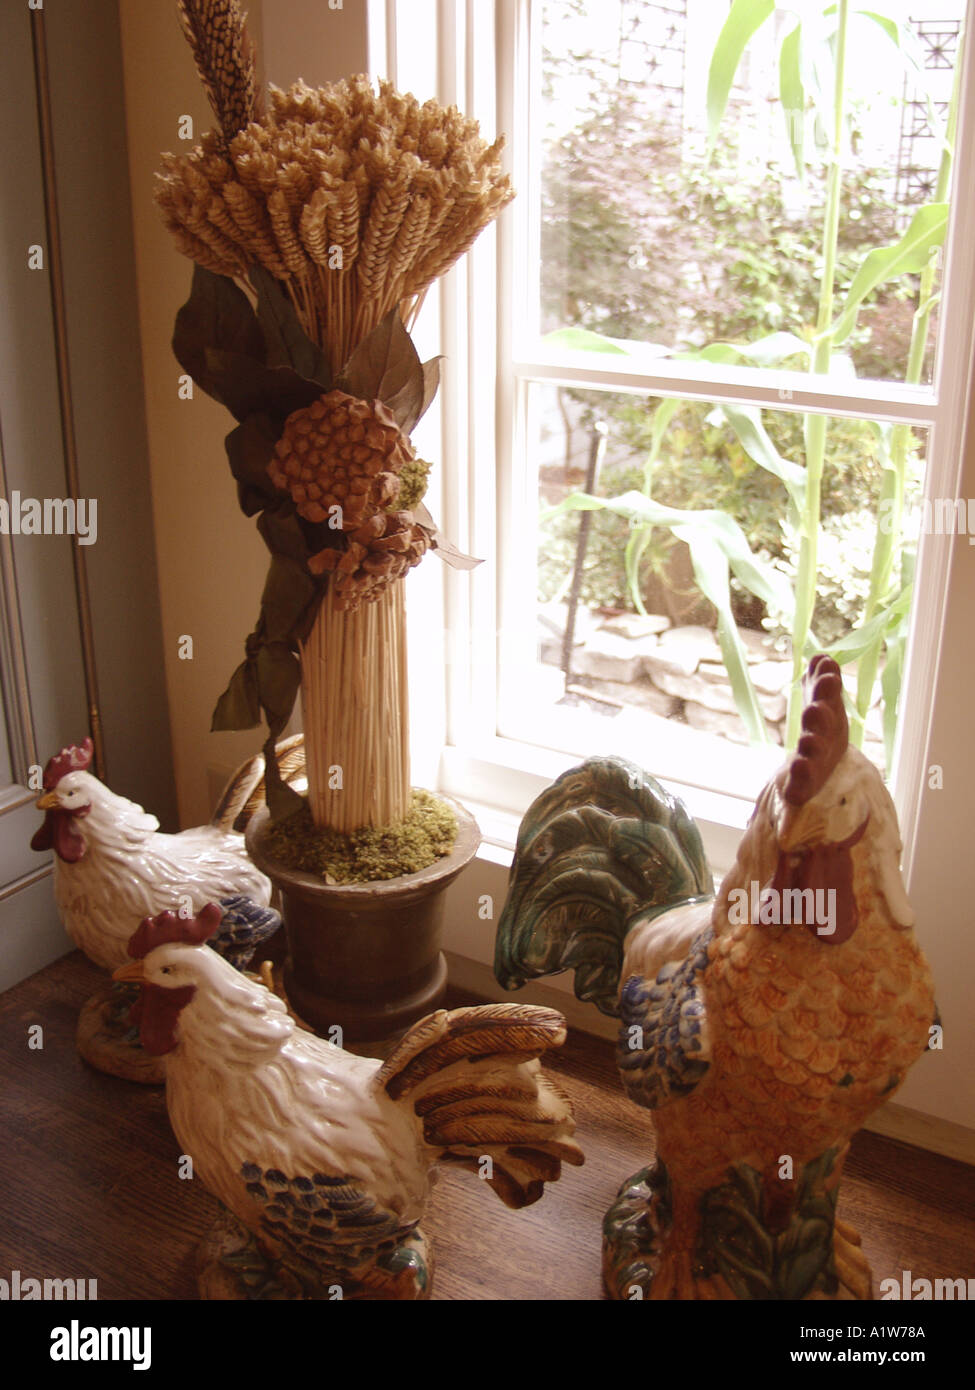 decorative wheat in vase on window sill - Stock Image